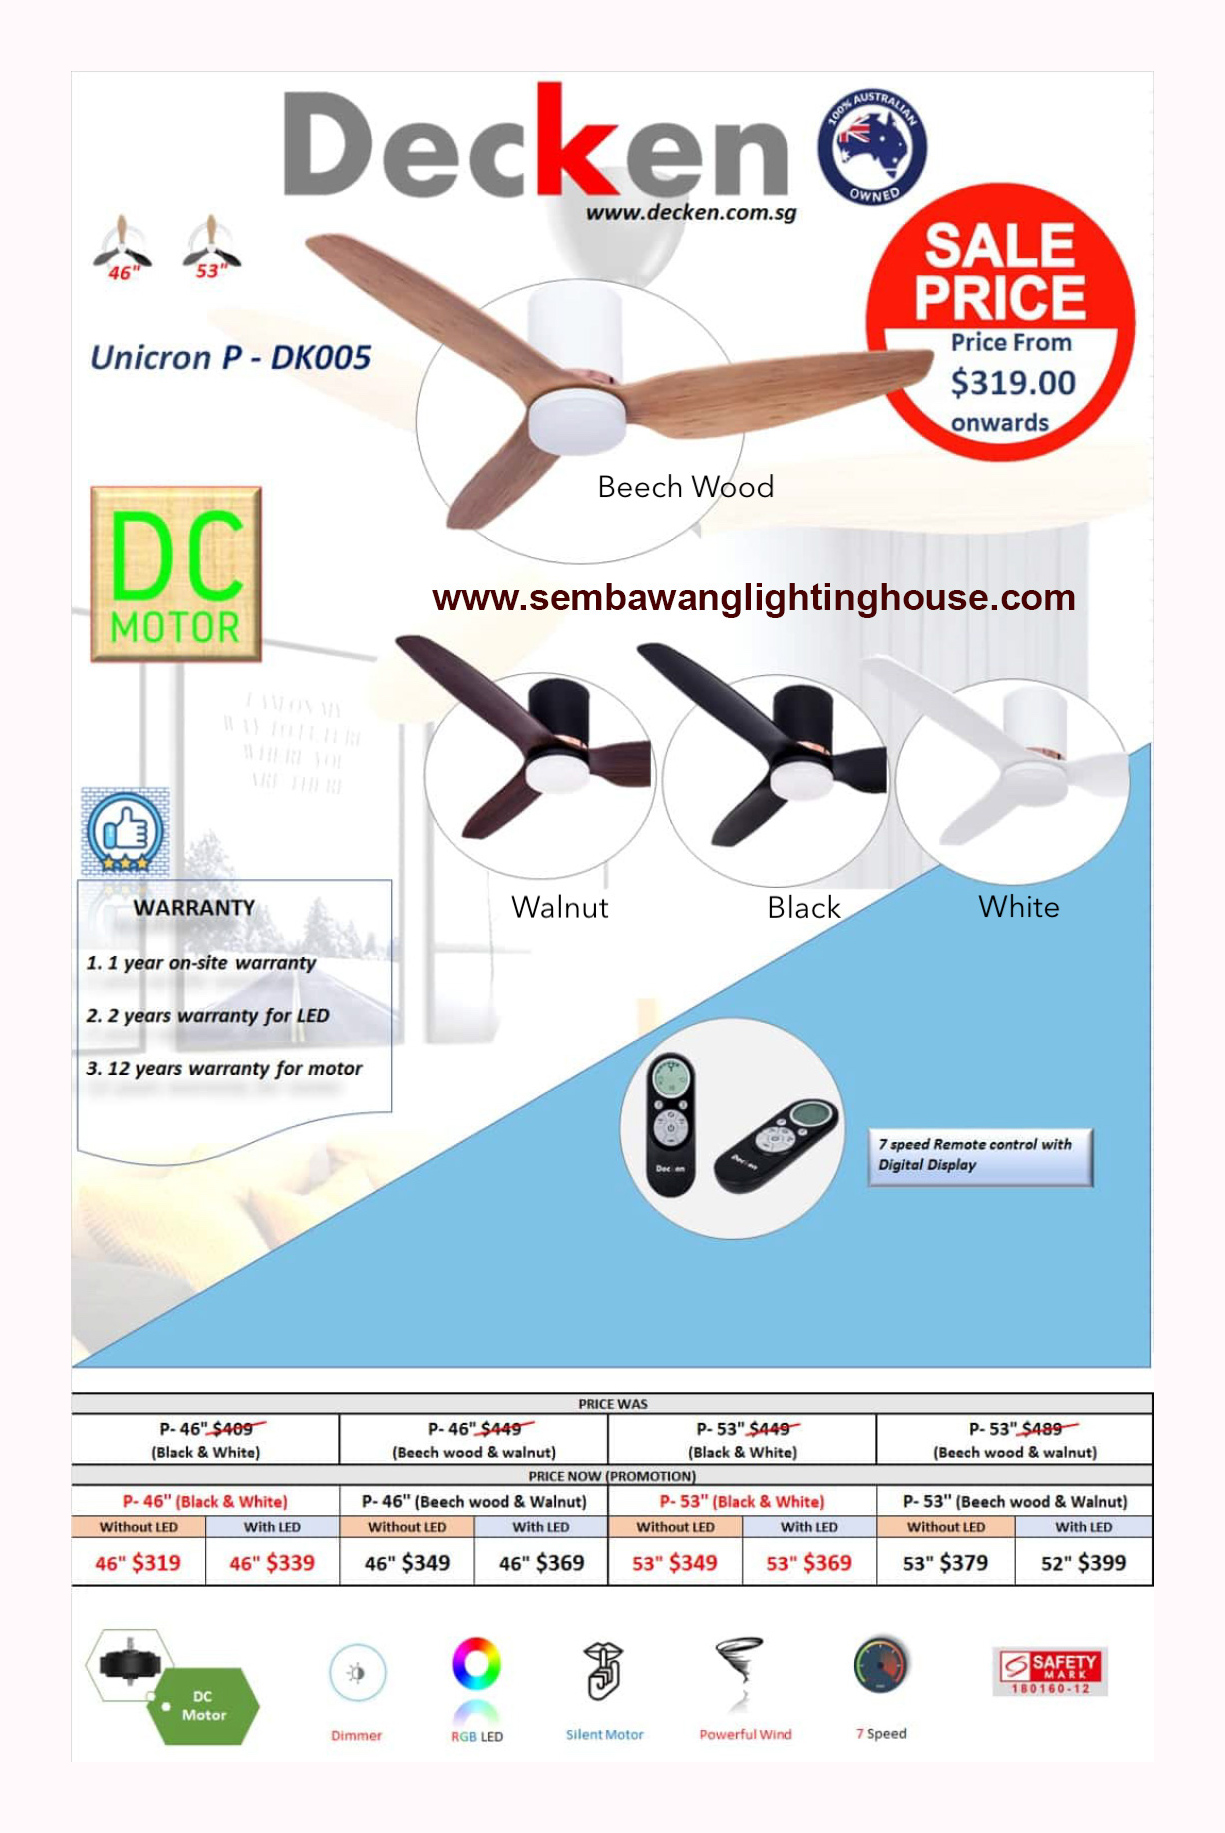 decken-dk005-hugger-ceiling-fan-brochure-sembawang-lighting-house.jpg